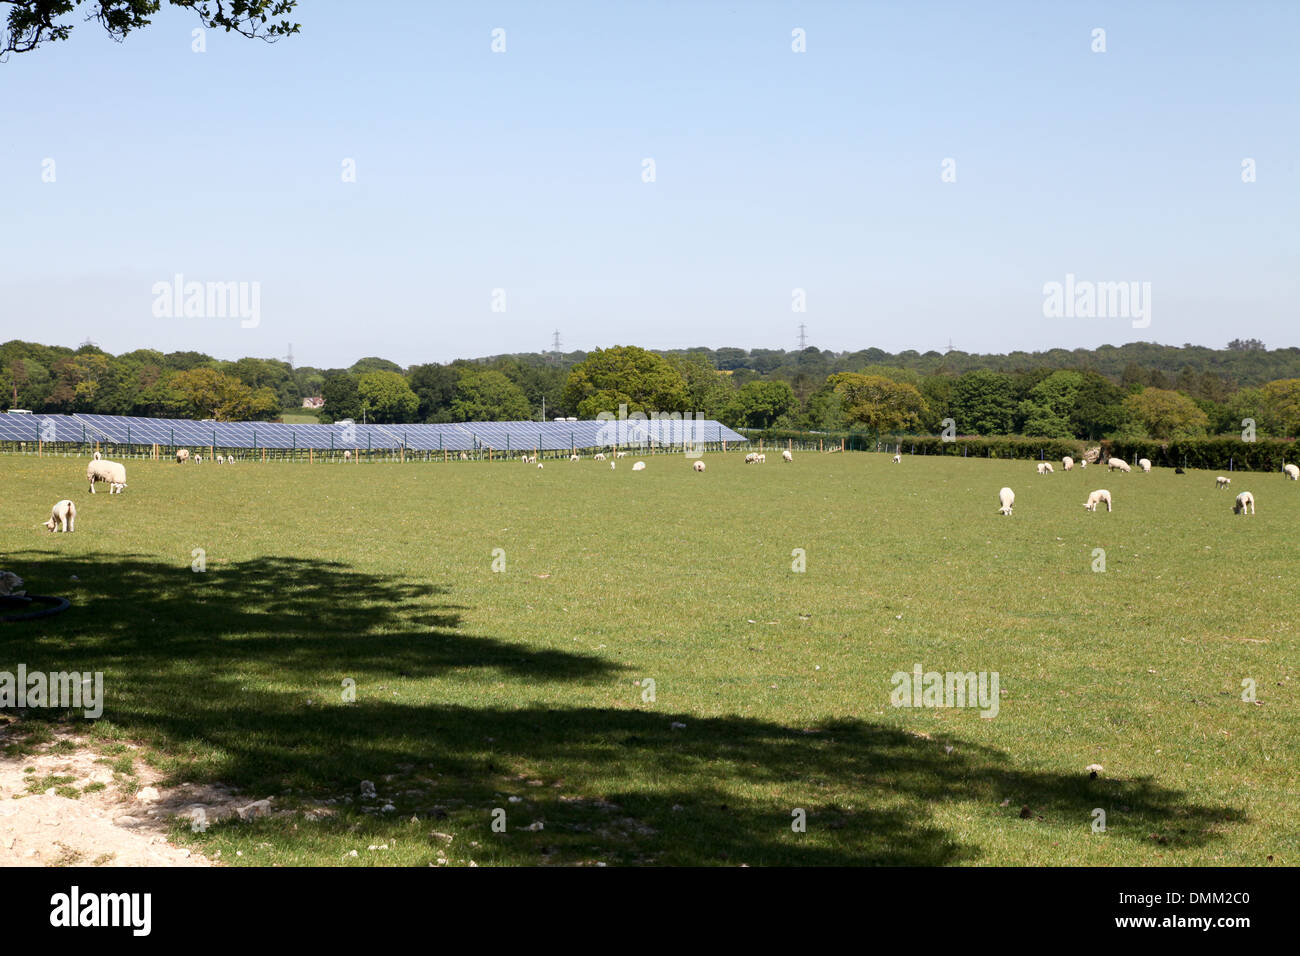 sheep grazing by solar panels - Stock Image